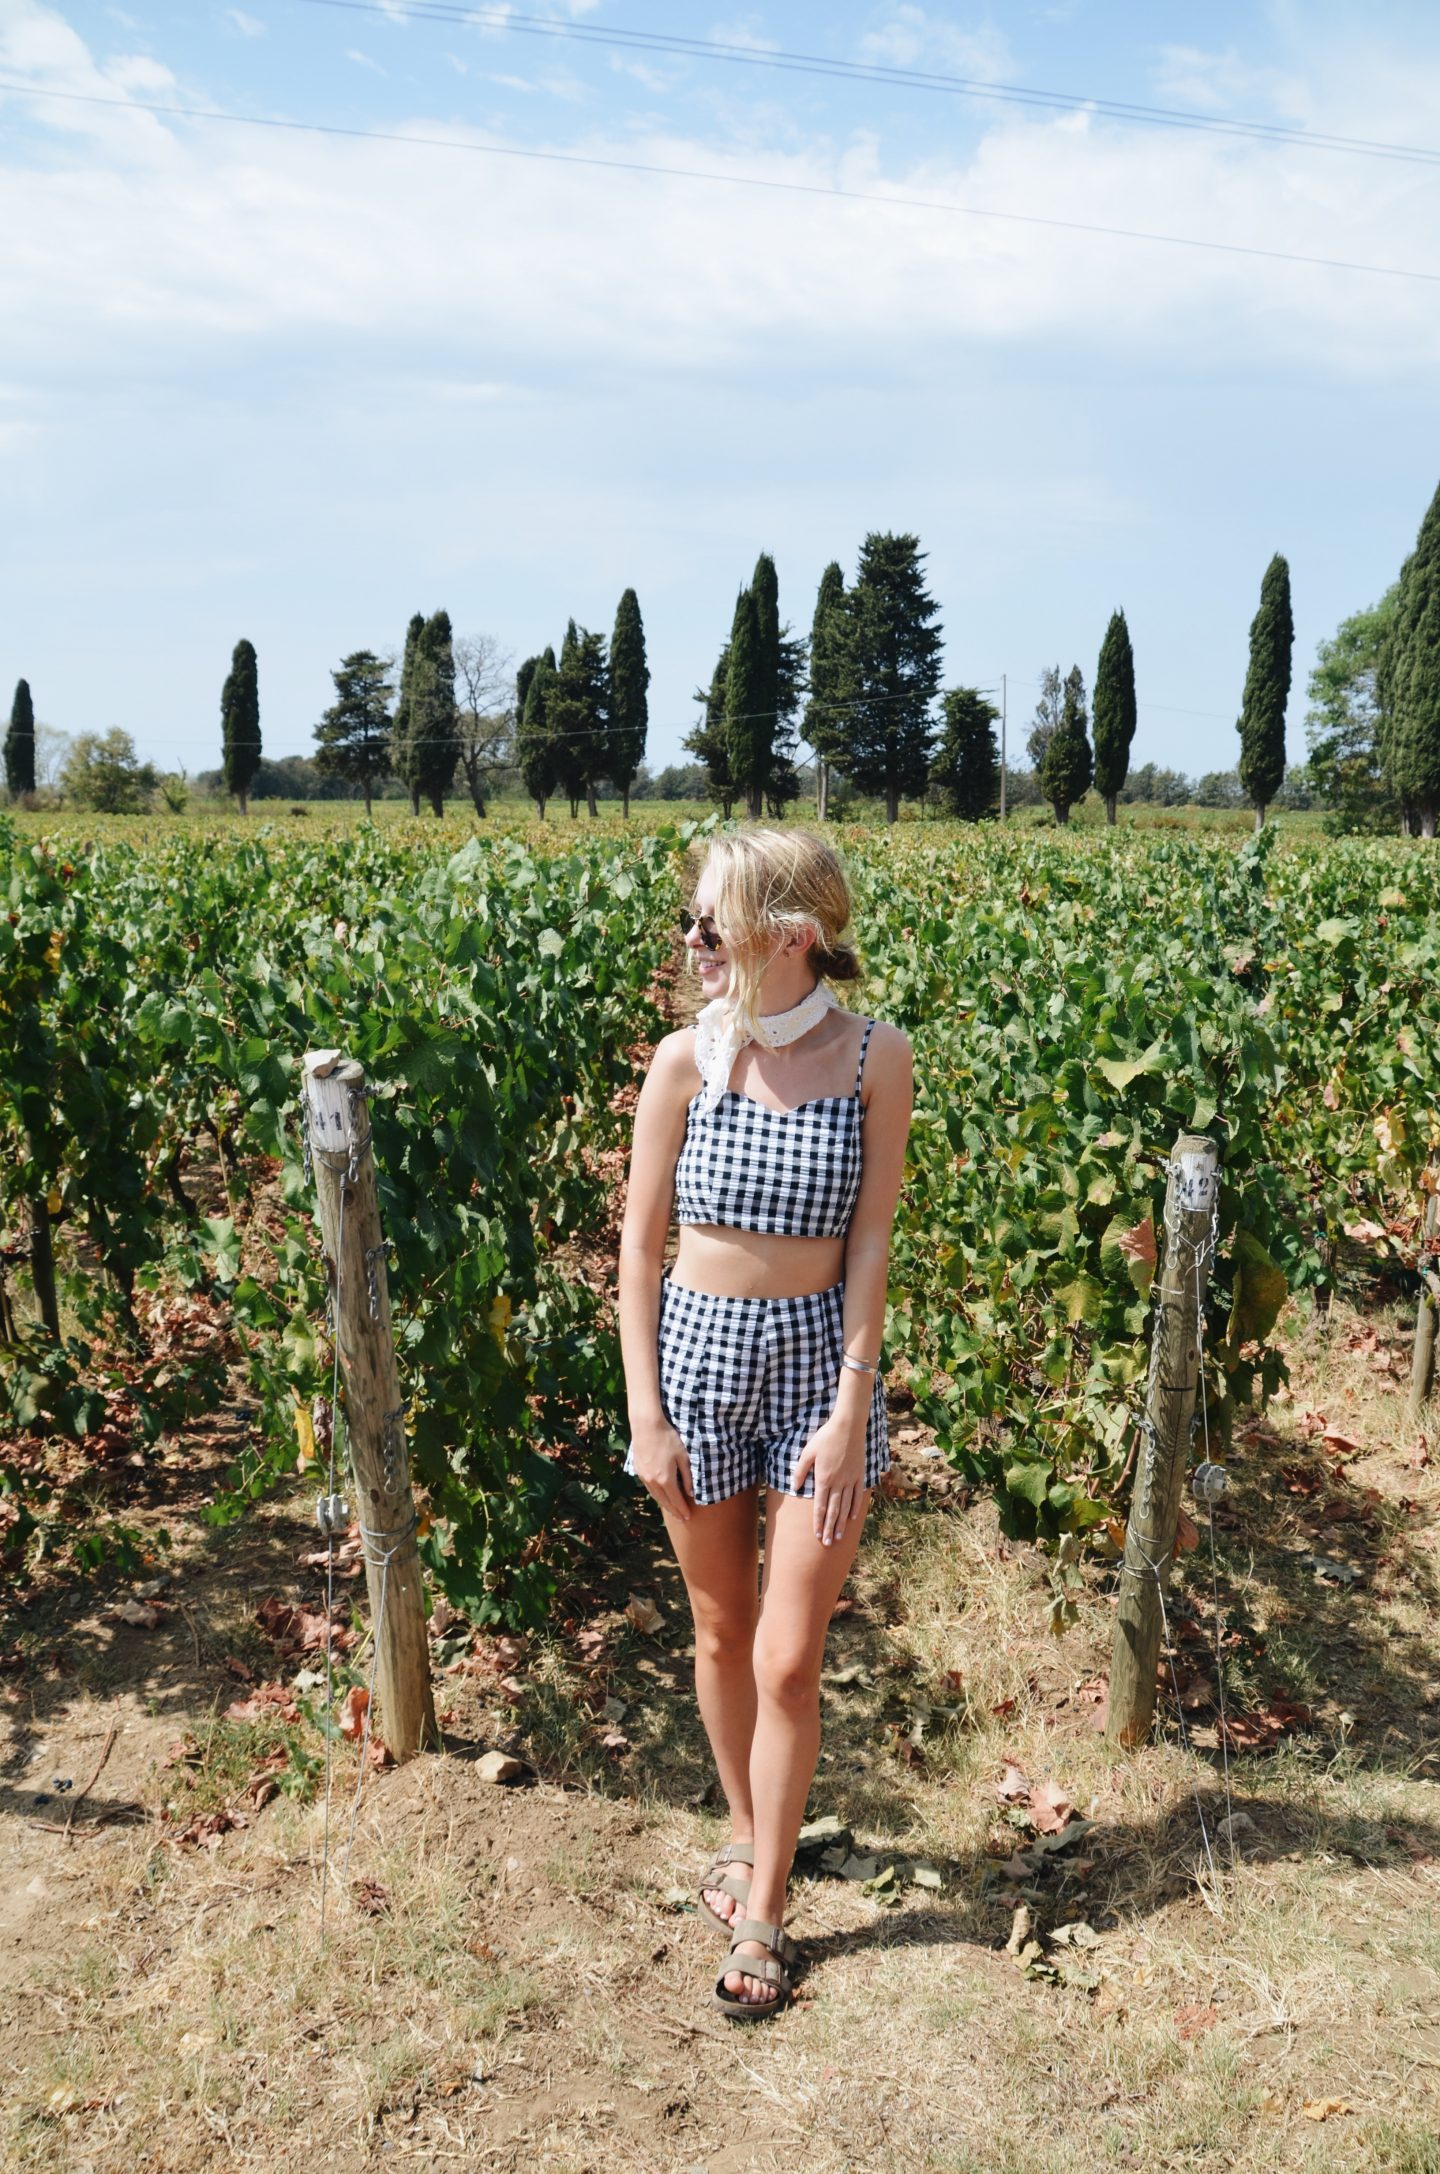 Tuscan Vineyards and Gingham Sets